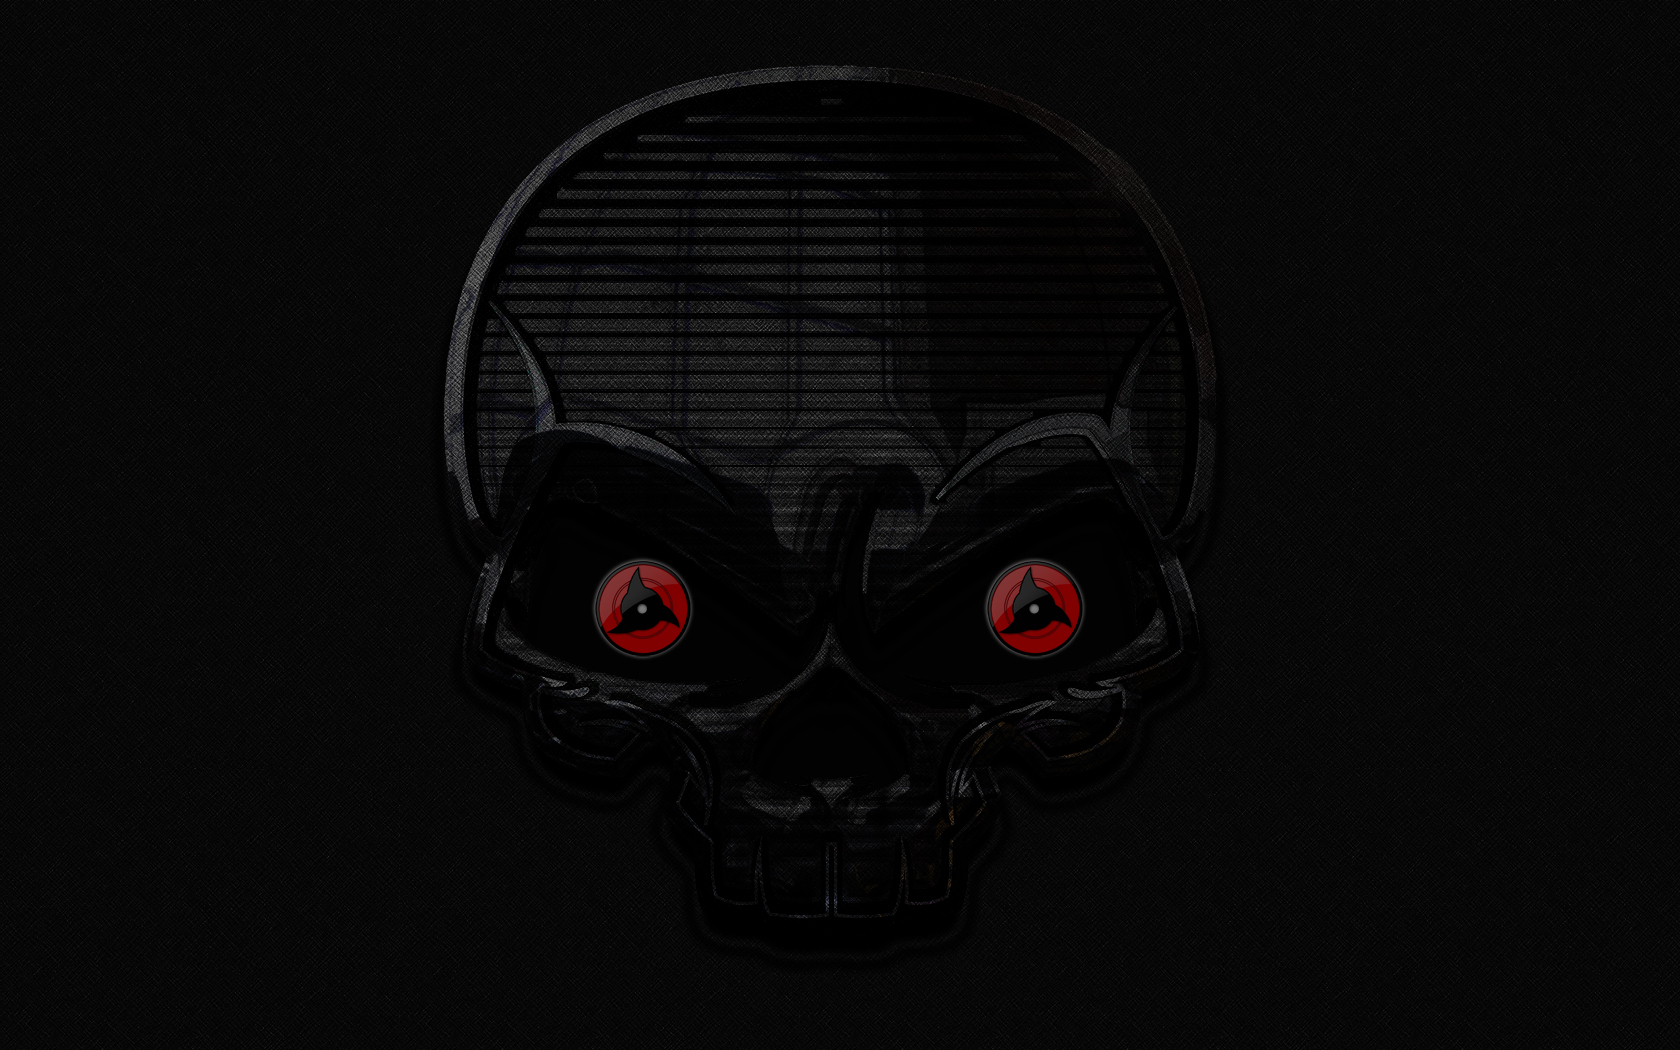 skull wallpaper for windows 7 - photo #7